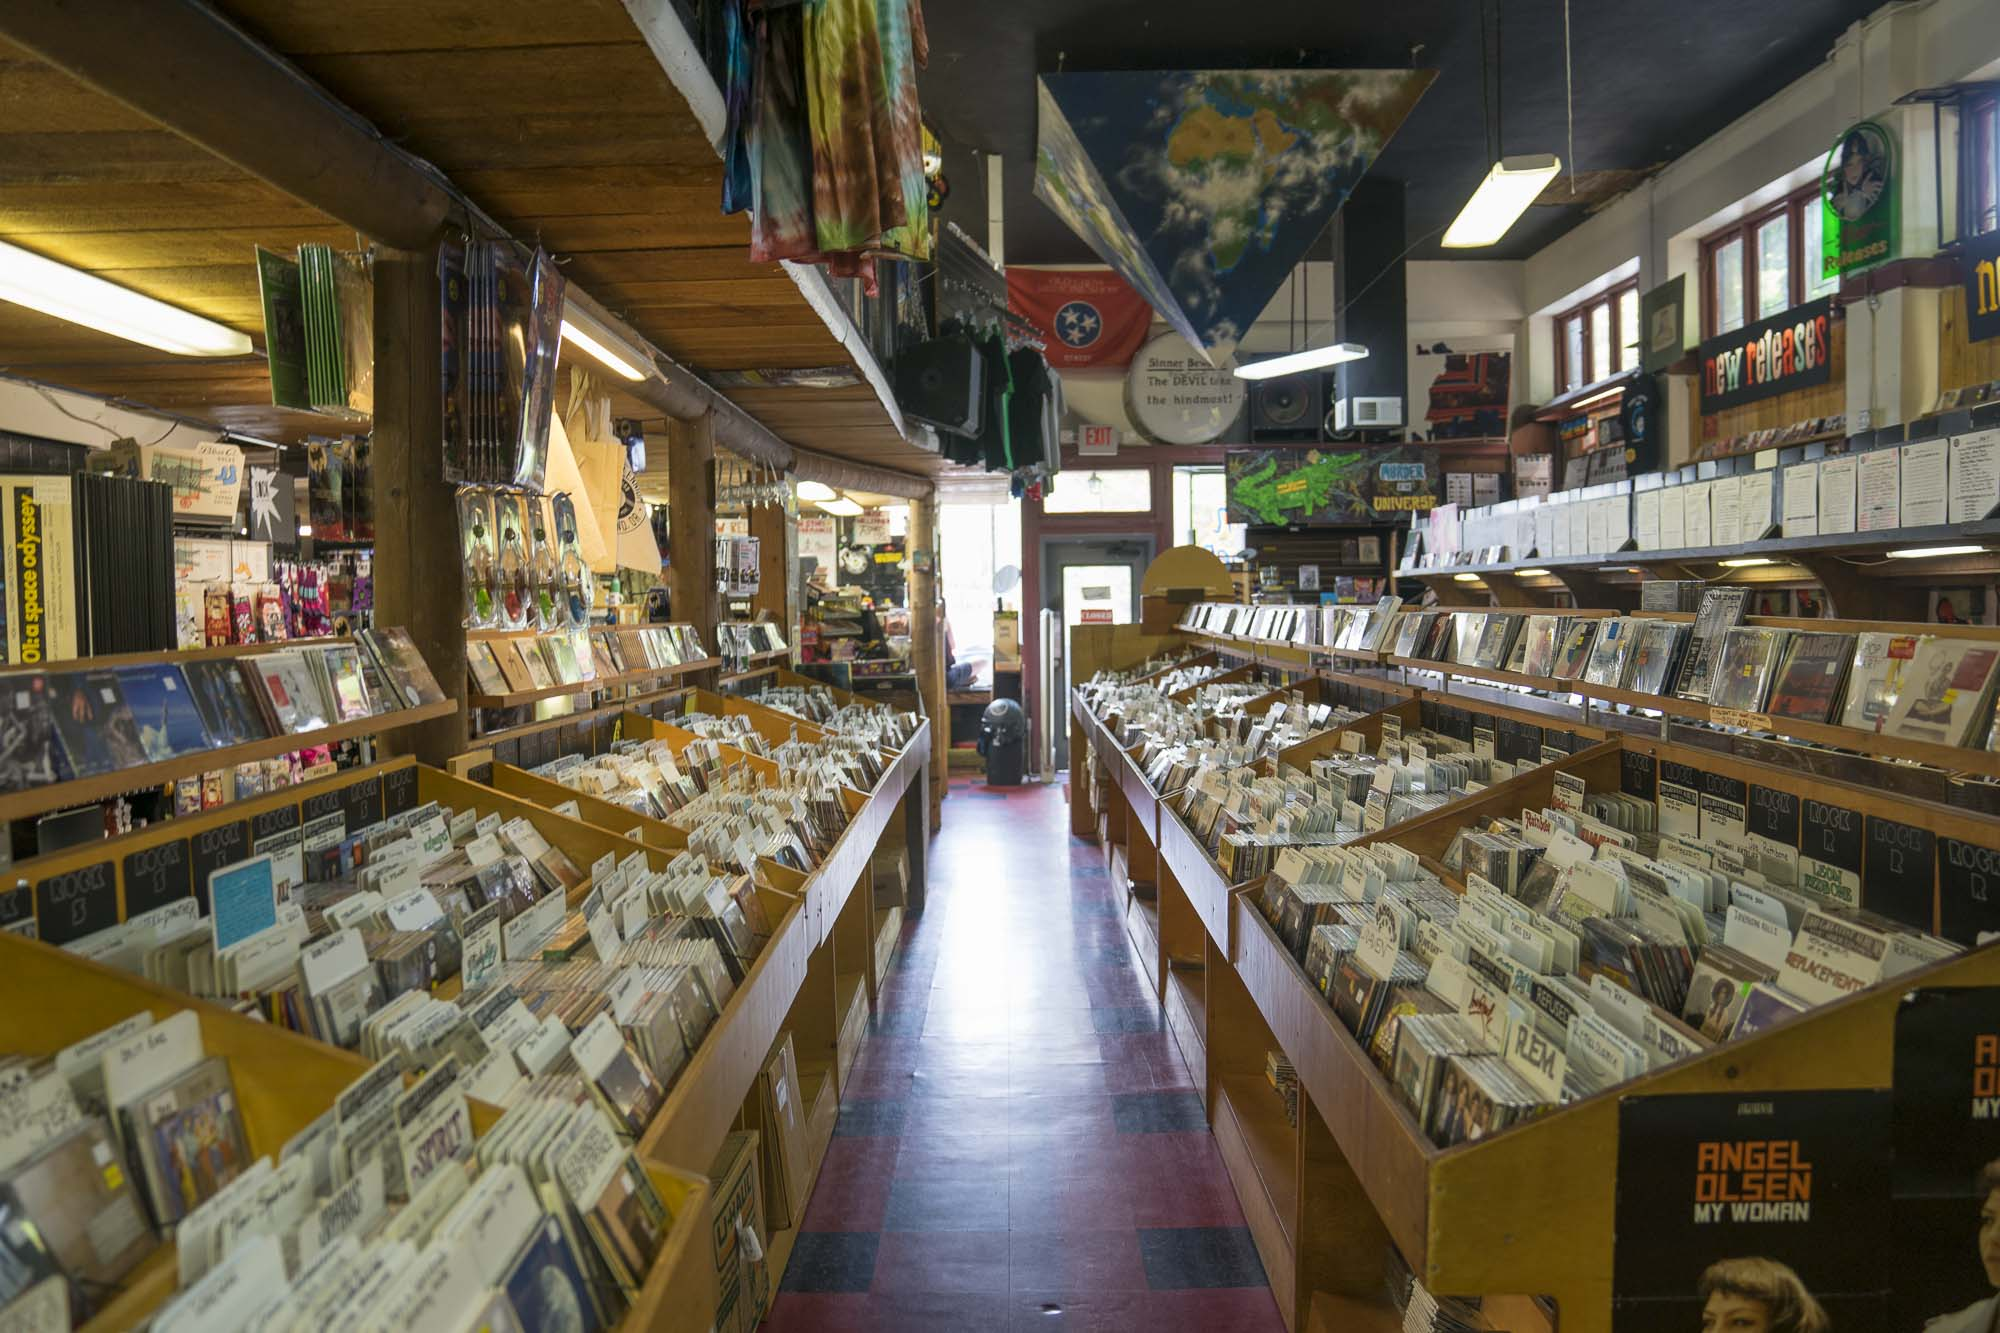 Many records on the shelves of Music Millenium in Portland Oregon for Dirt Road Travels